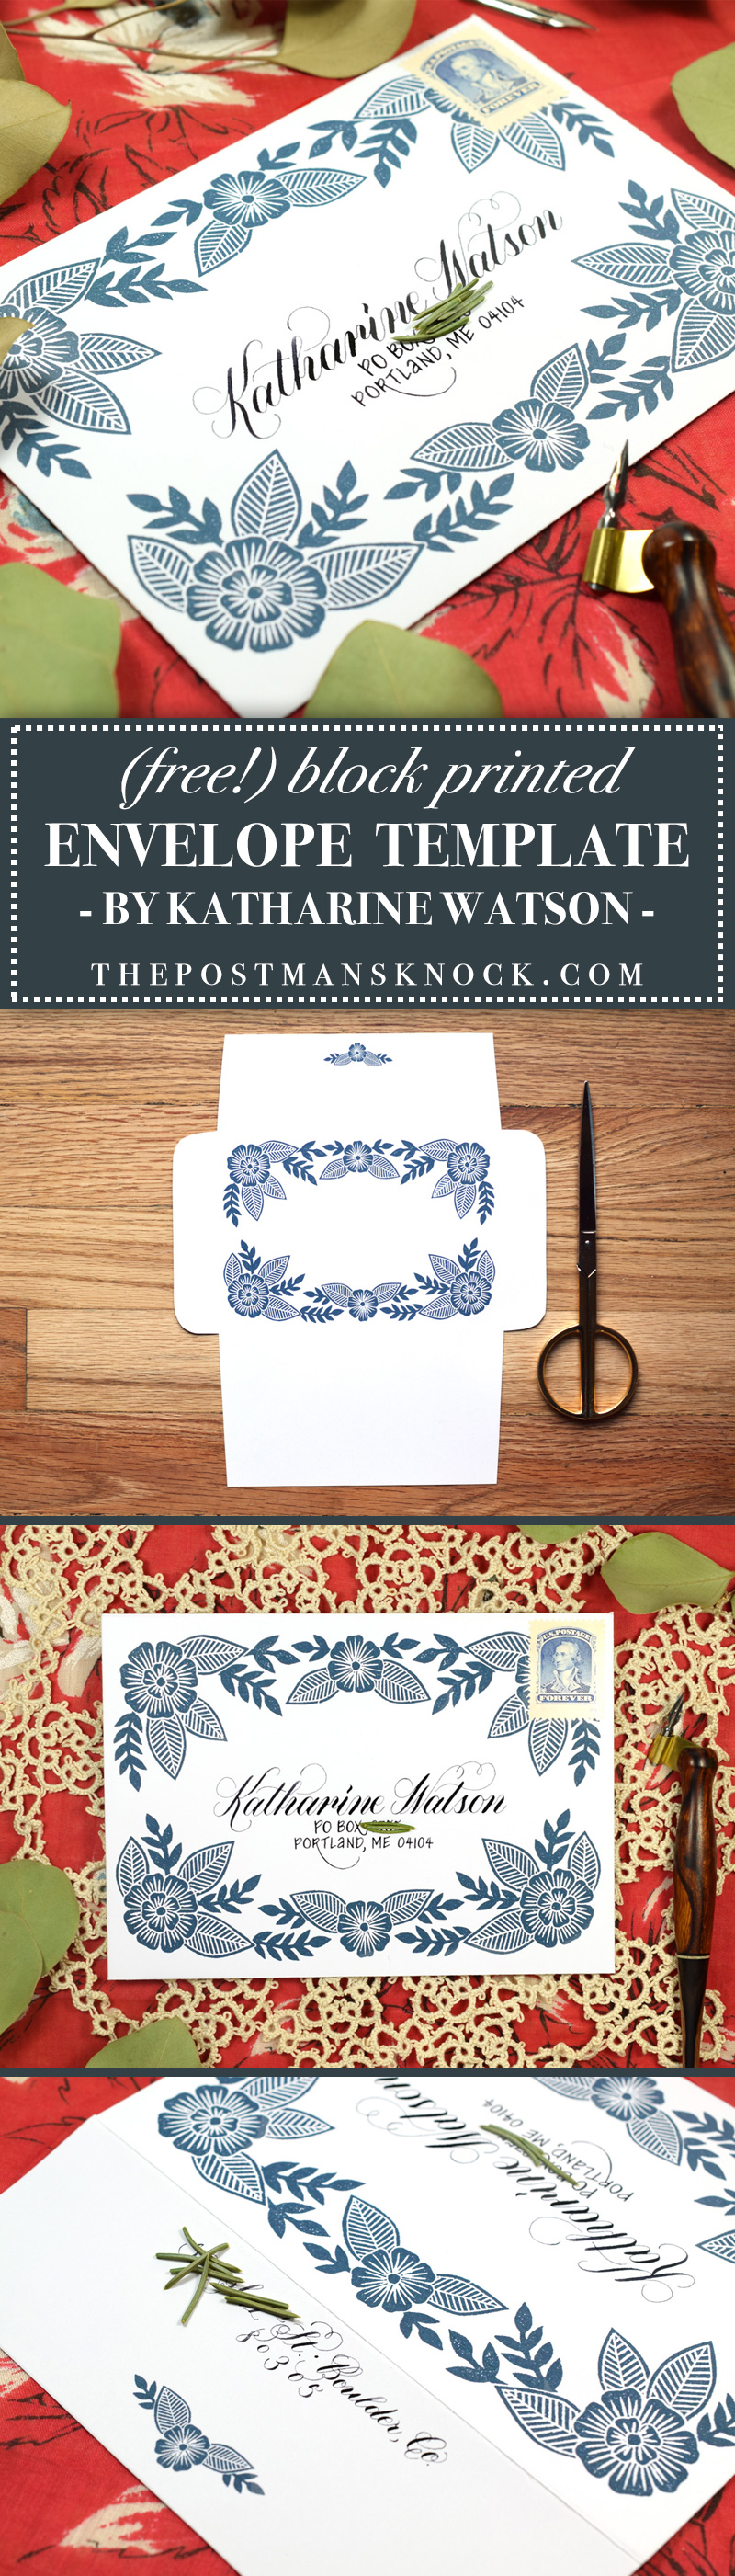 free block printed envelope template the postmans knock - Free Printed Pictures